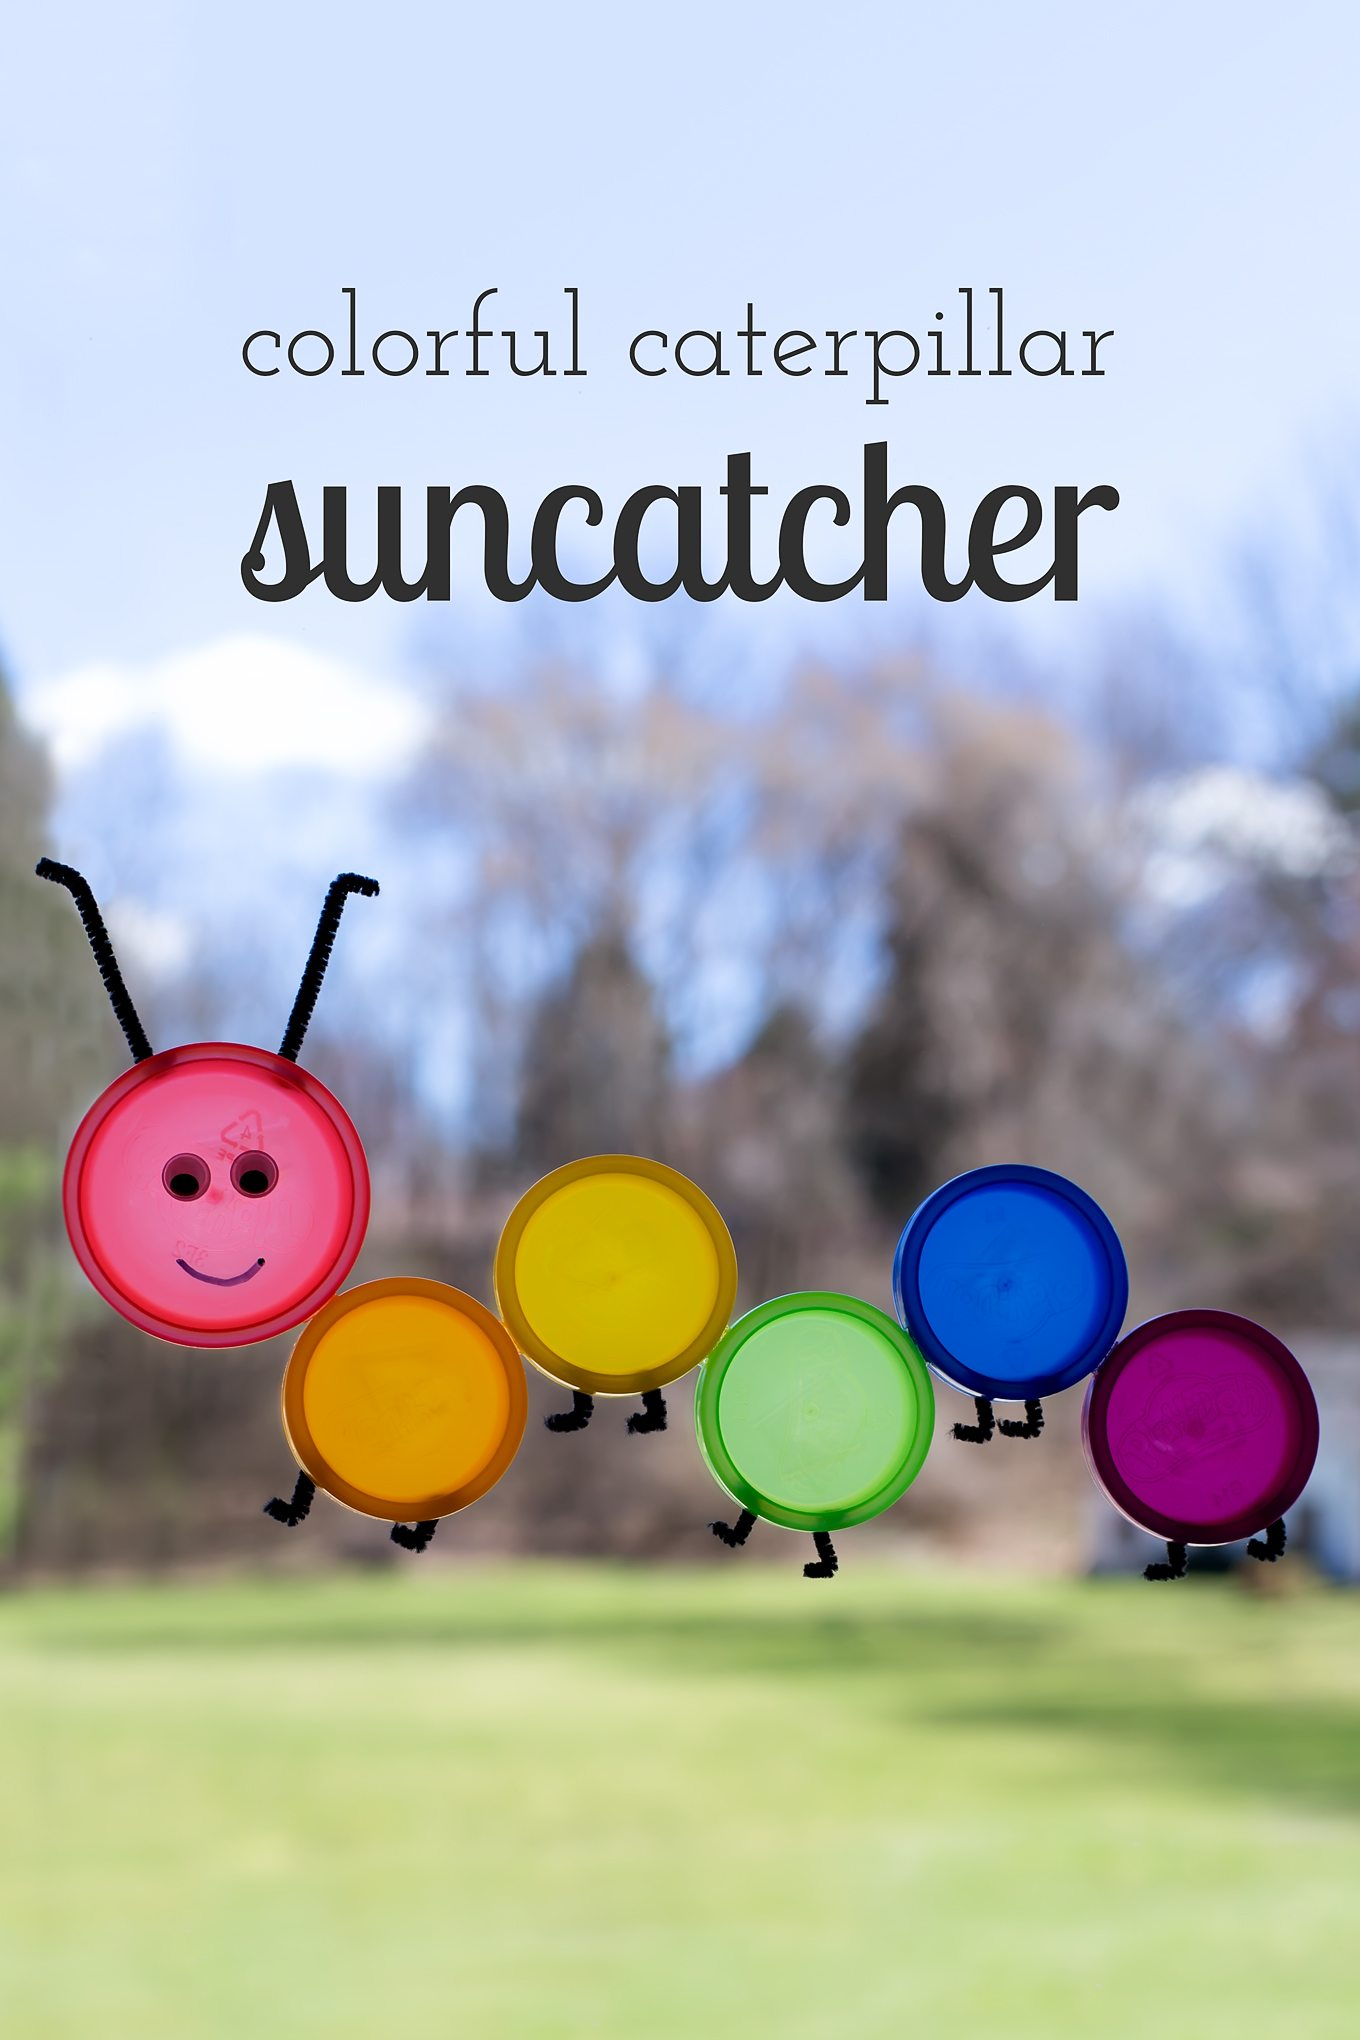 How to Make a Colorful Caterpillar Suncatcher